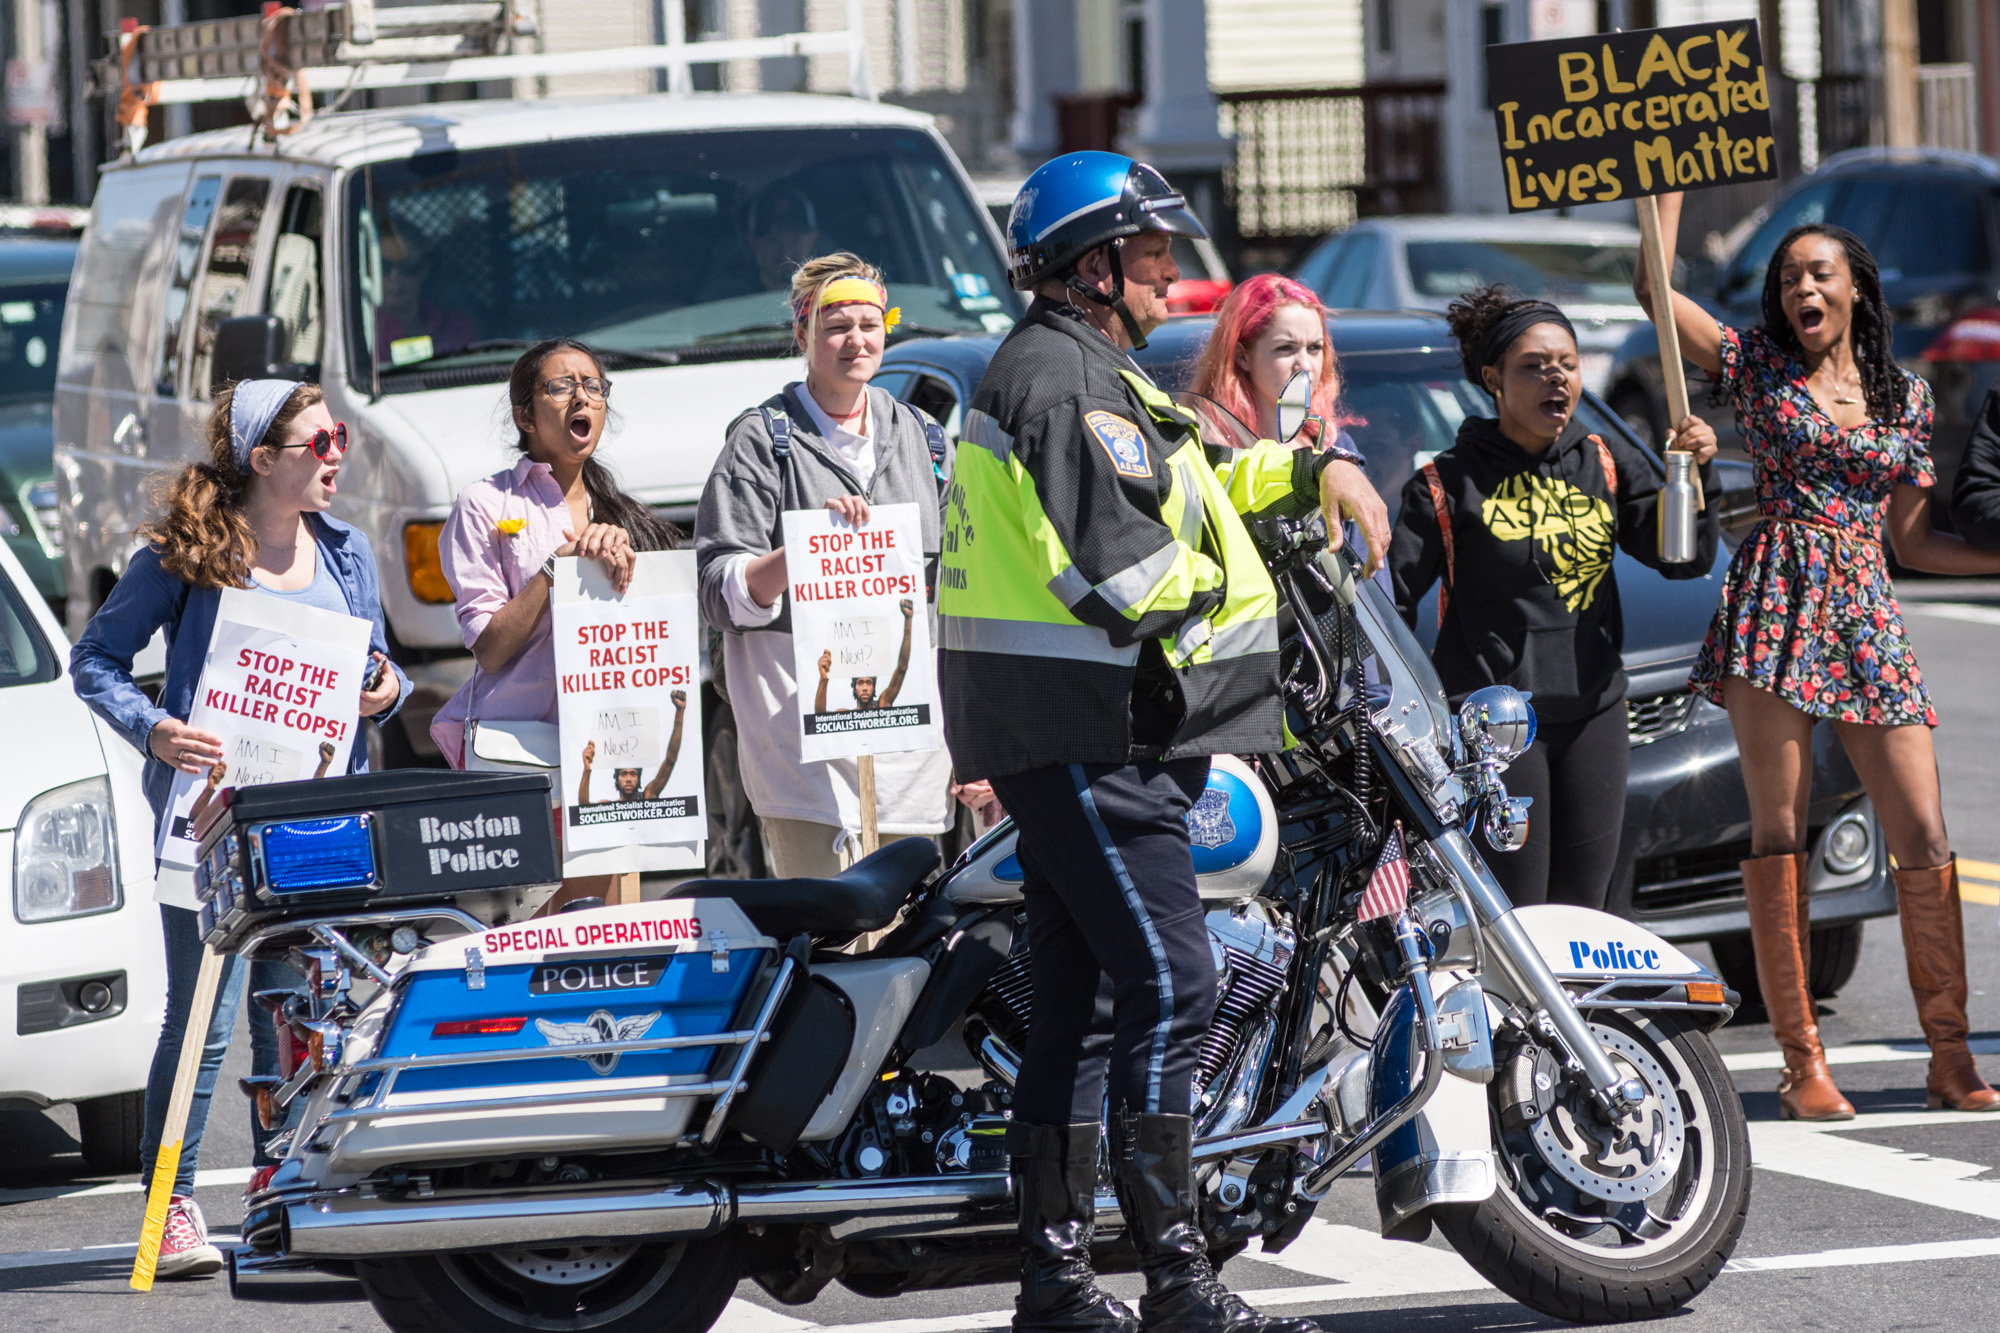 Motorcycle cop in the intersection while protesters block traffic